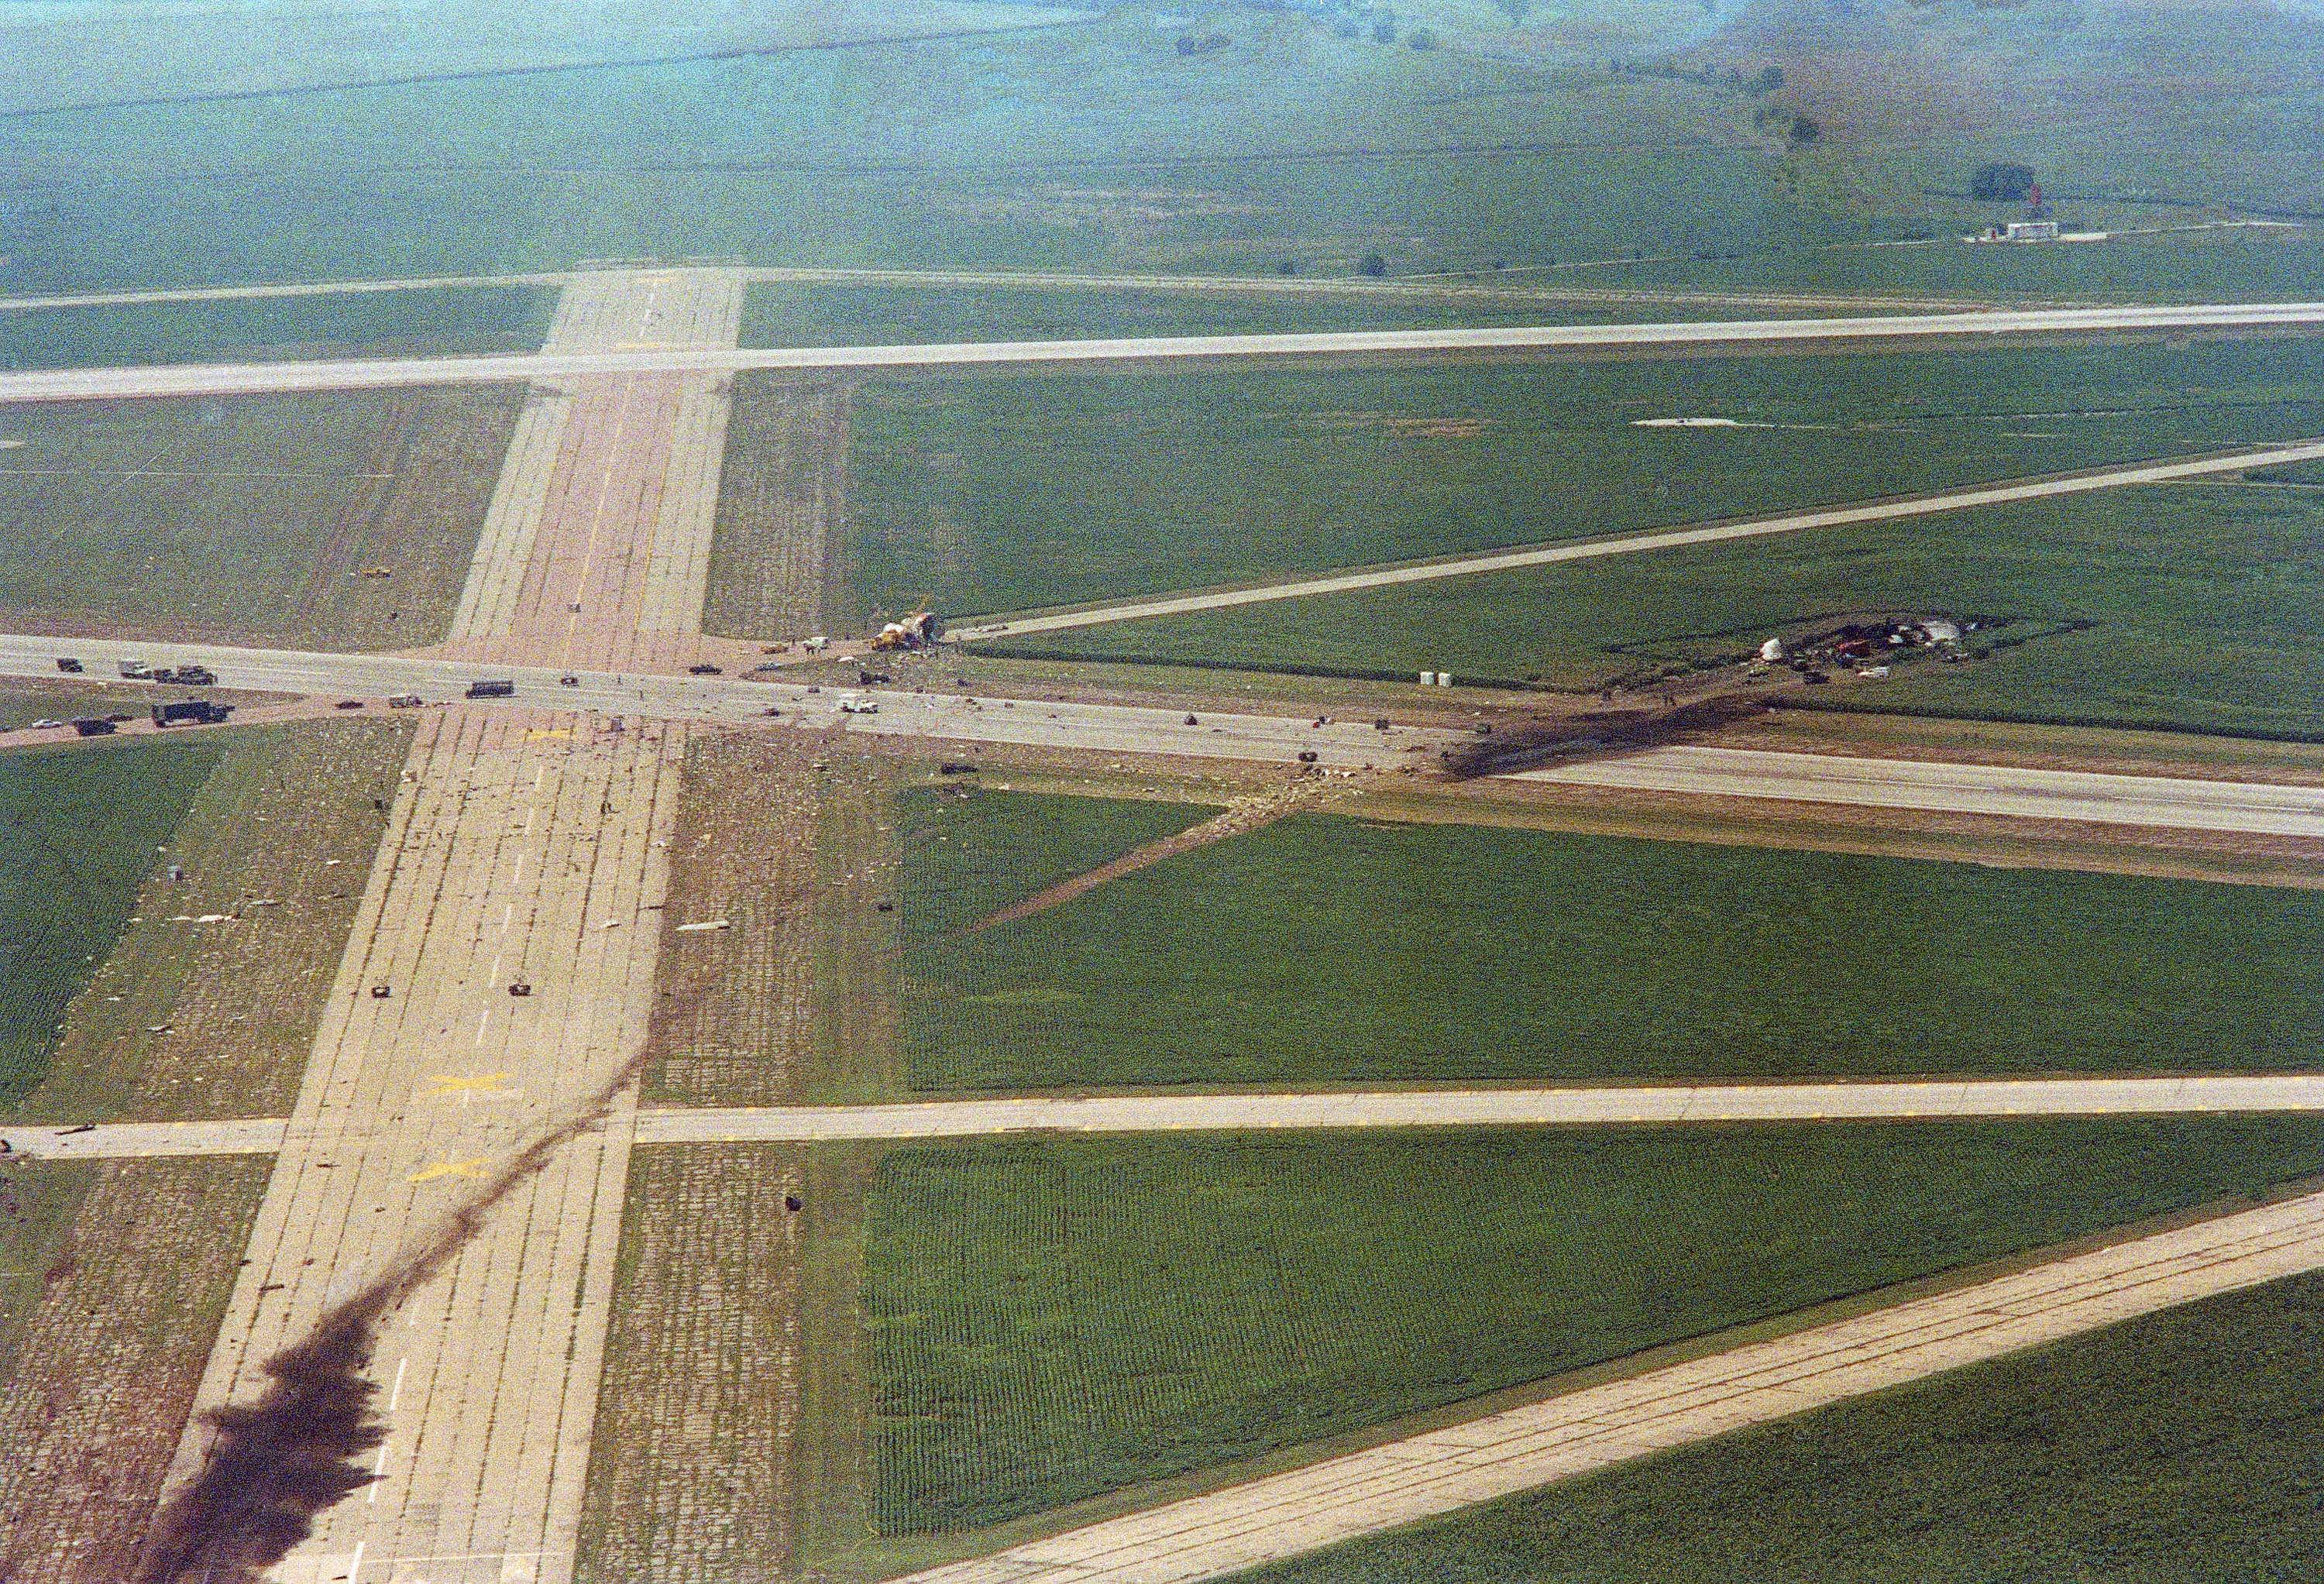 A burnt area shows the contact point and crash path of United Airlines flight 232 after it exploded on impact during an attempted emergency landing at Sioux City Airport in Sioux City, Iowa on July 20, 1989. The old runways of the original airport, now used as taxiways, are seen criss-crossing the crash path. The pilot was attempting to land on one of the closed runways.